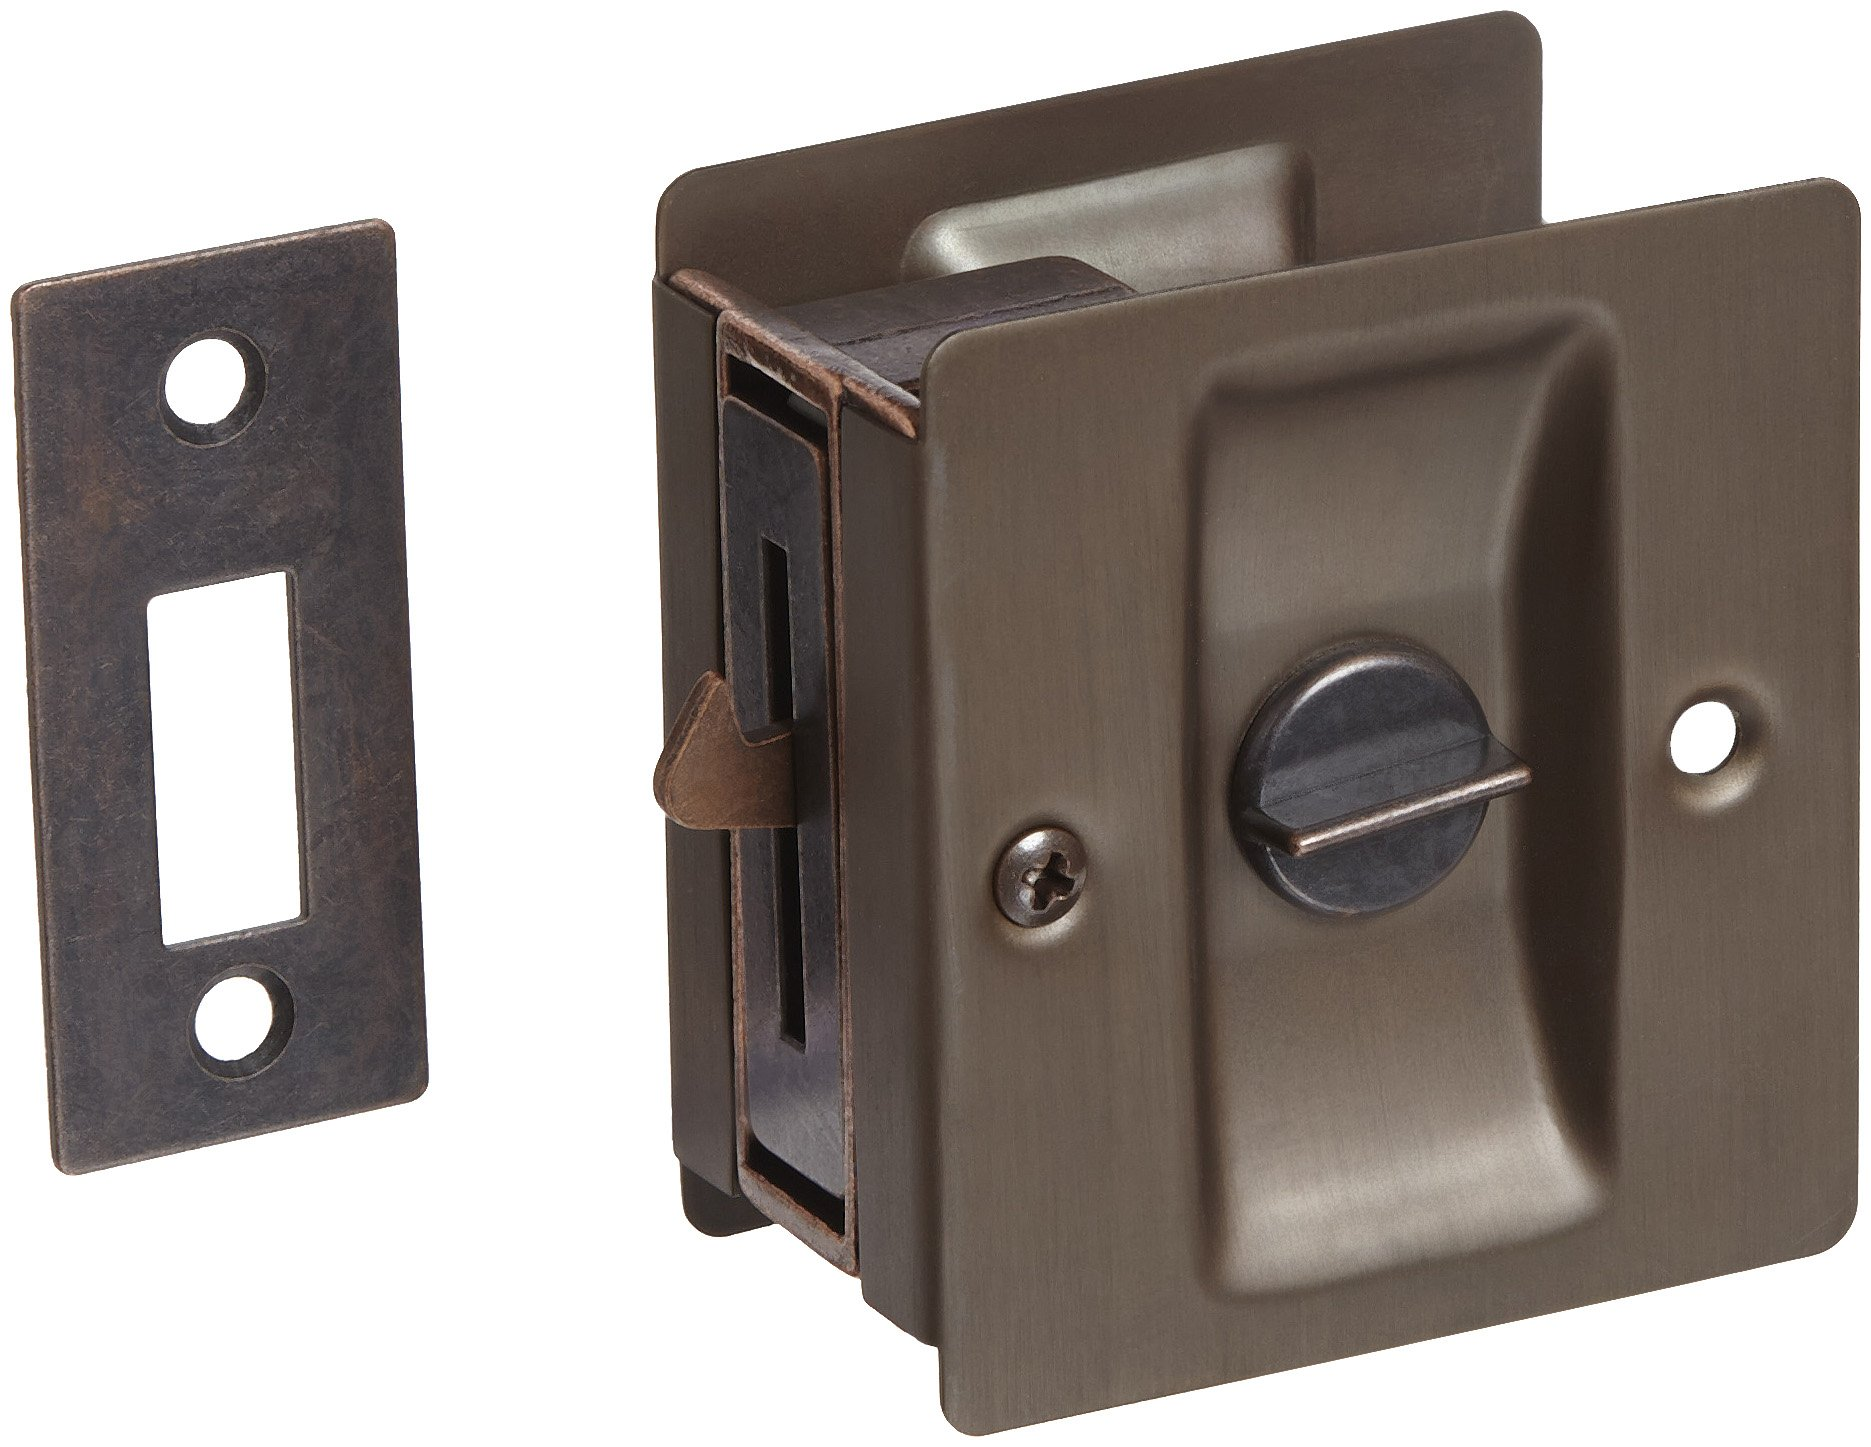 Rockwood 891.10B Brass Pocket Door Privacy Latch, 2-1/2'' Width x 2-3/4'' Height, Satin Oxidized Oil Rubbed Bronze Finish by Rockwood